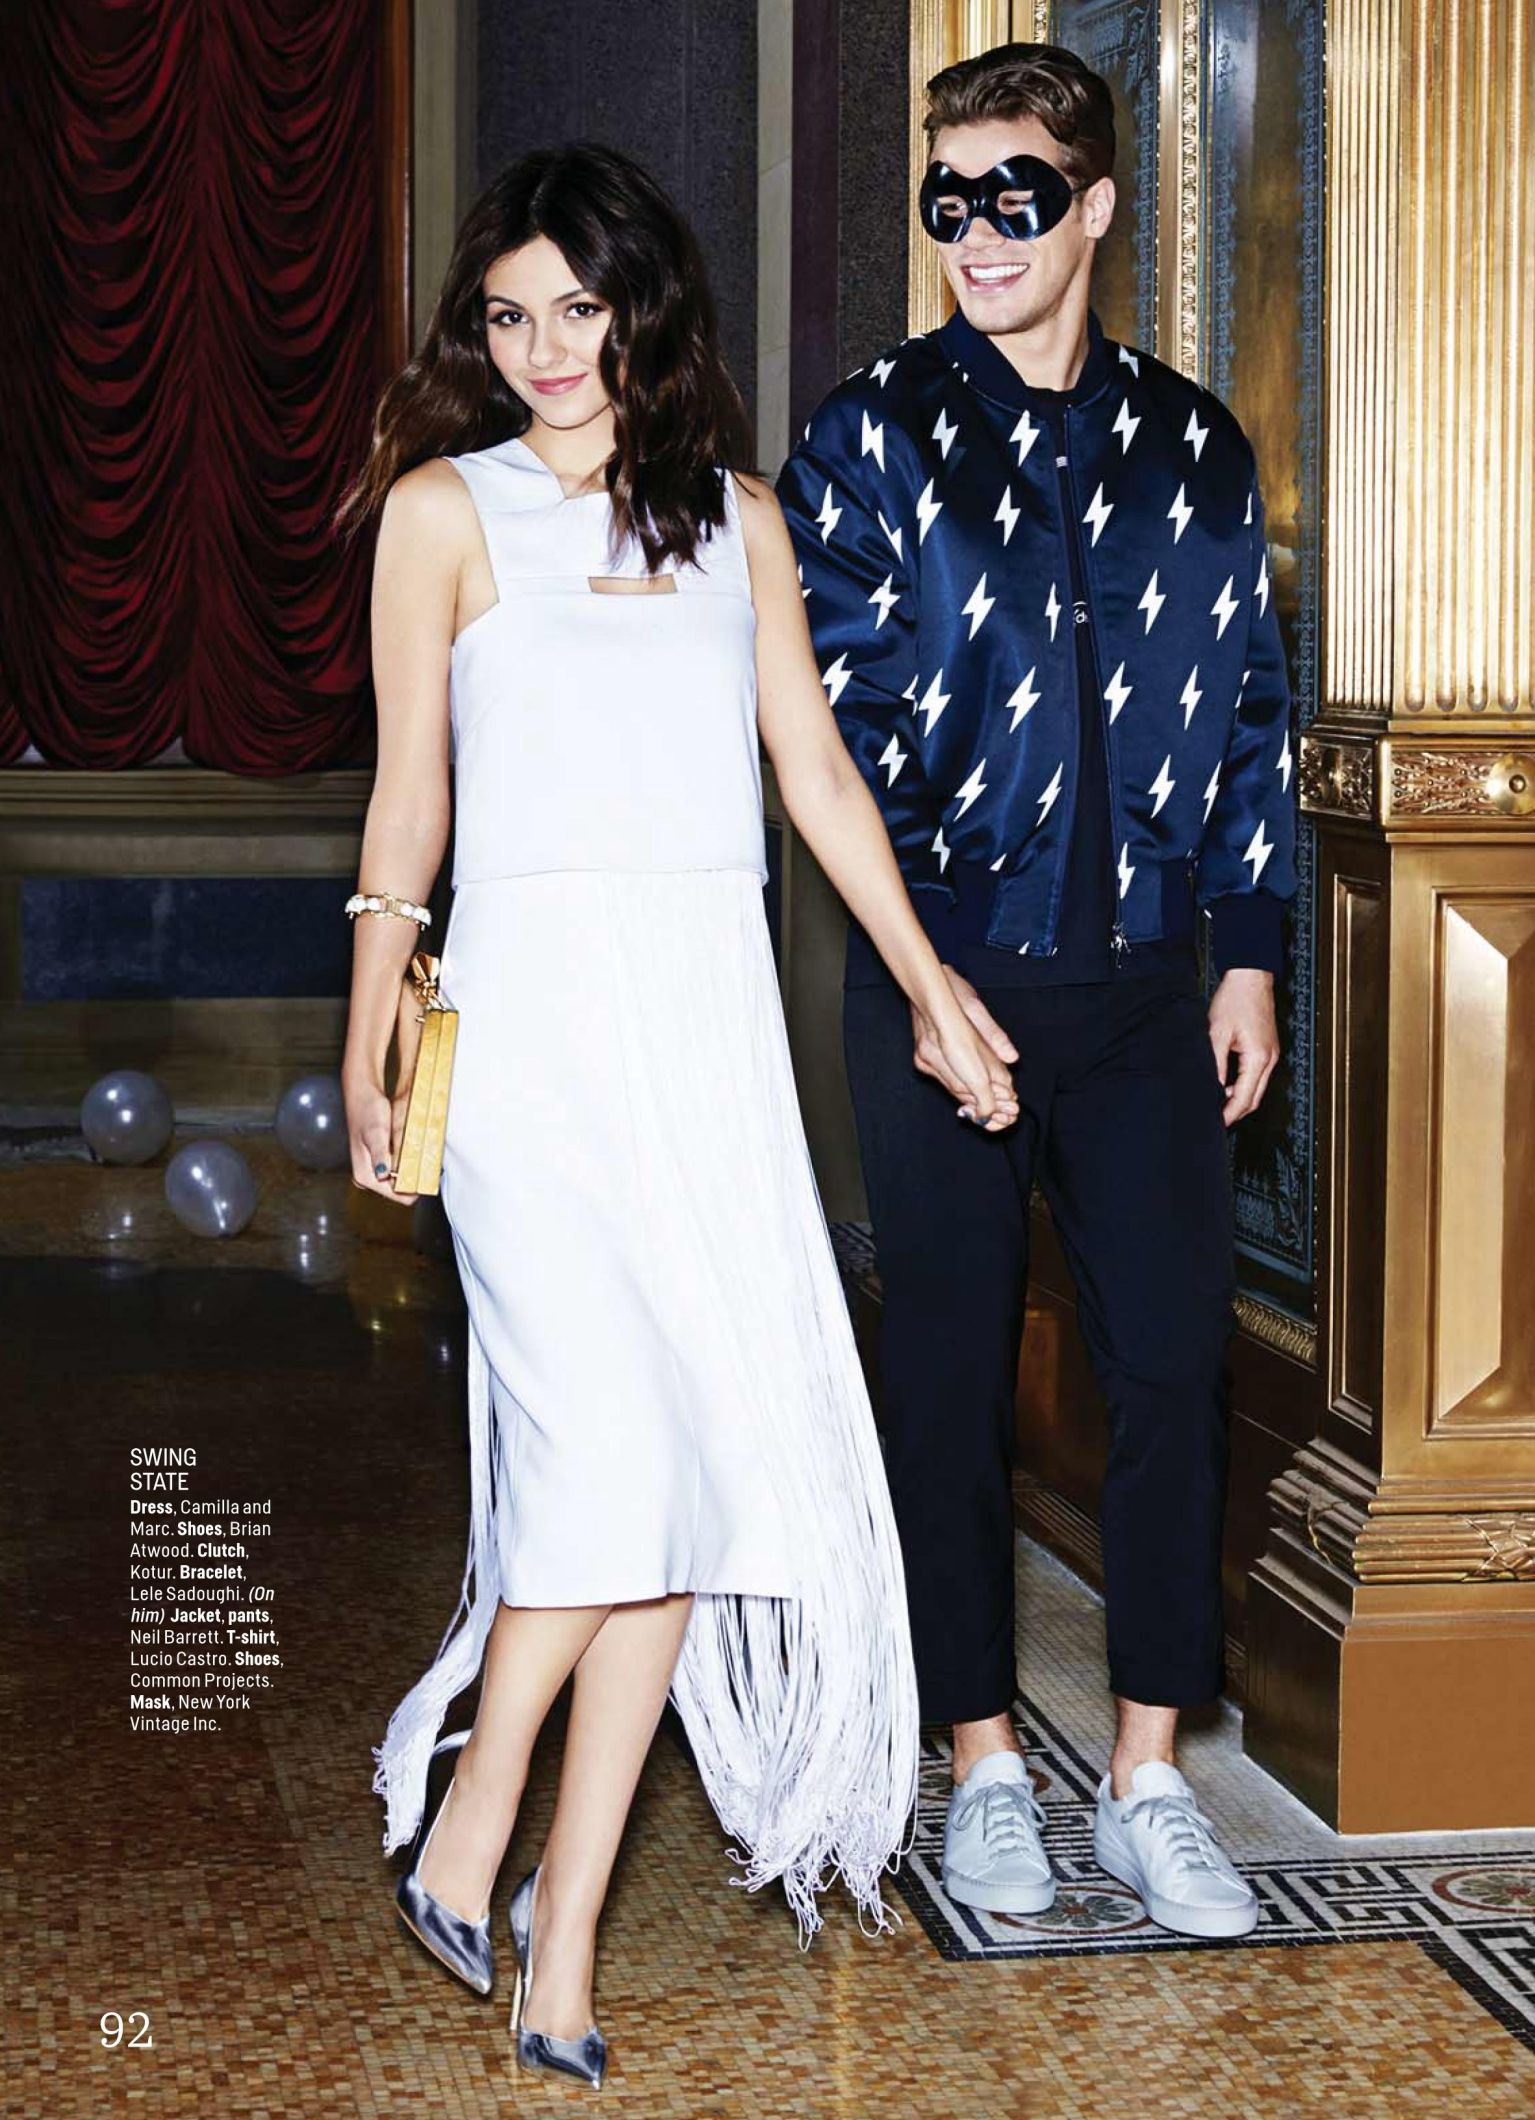 Tucker Des Lauriers Joins Victoria Justice For Cosmopolitan January 2015 Photo Shoot